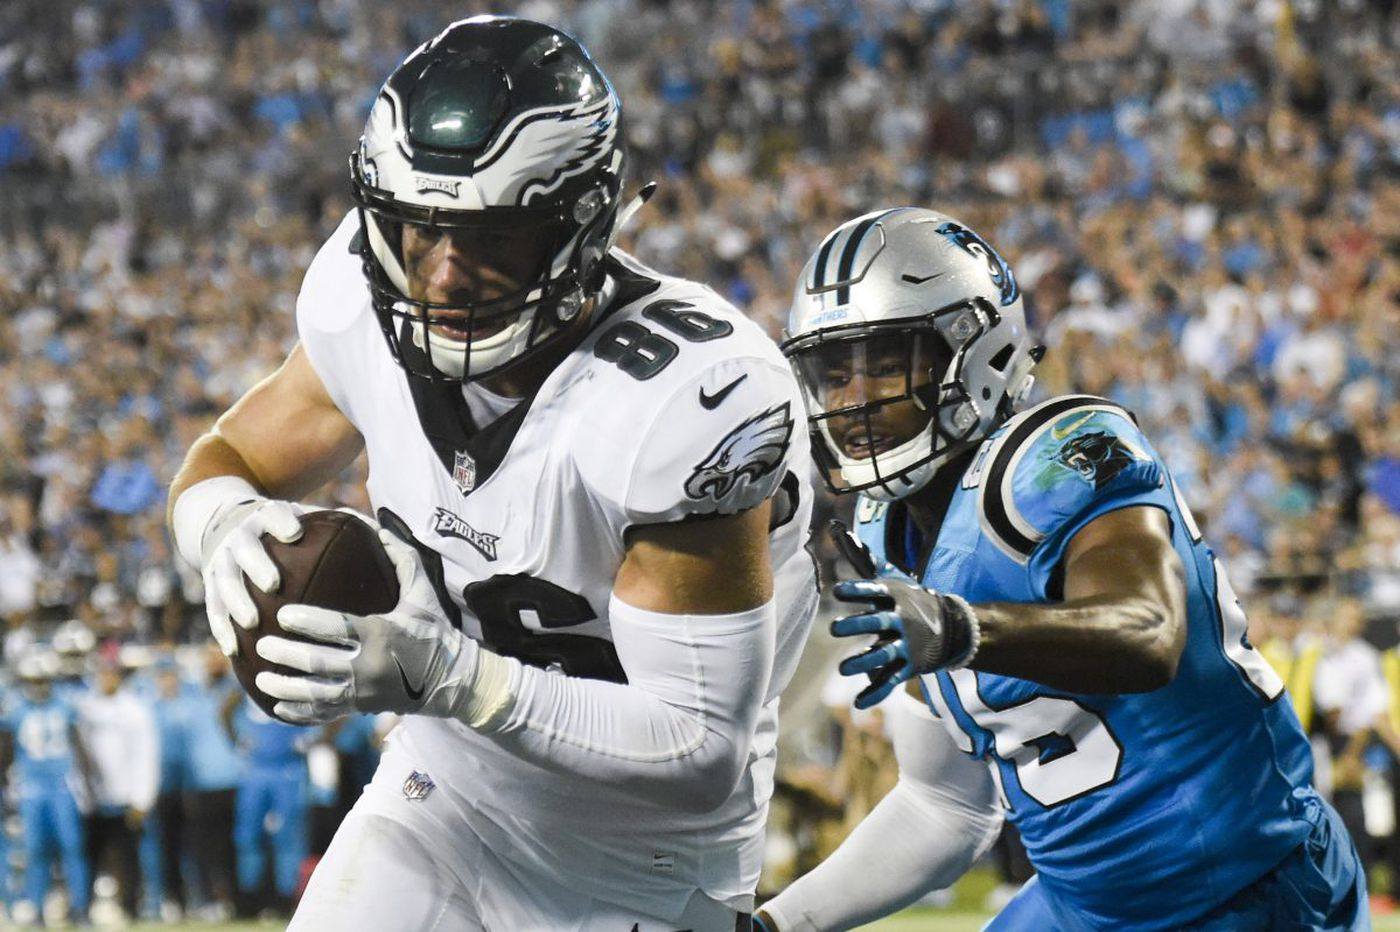 Sources: Eagles to trade WR Torrey Smith to Carolina for CB Daryl Worley, a Philly native